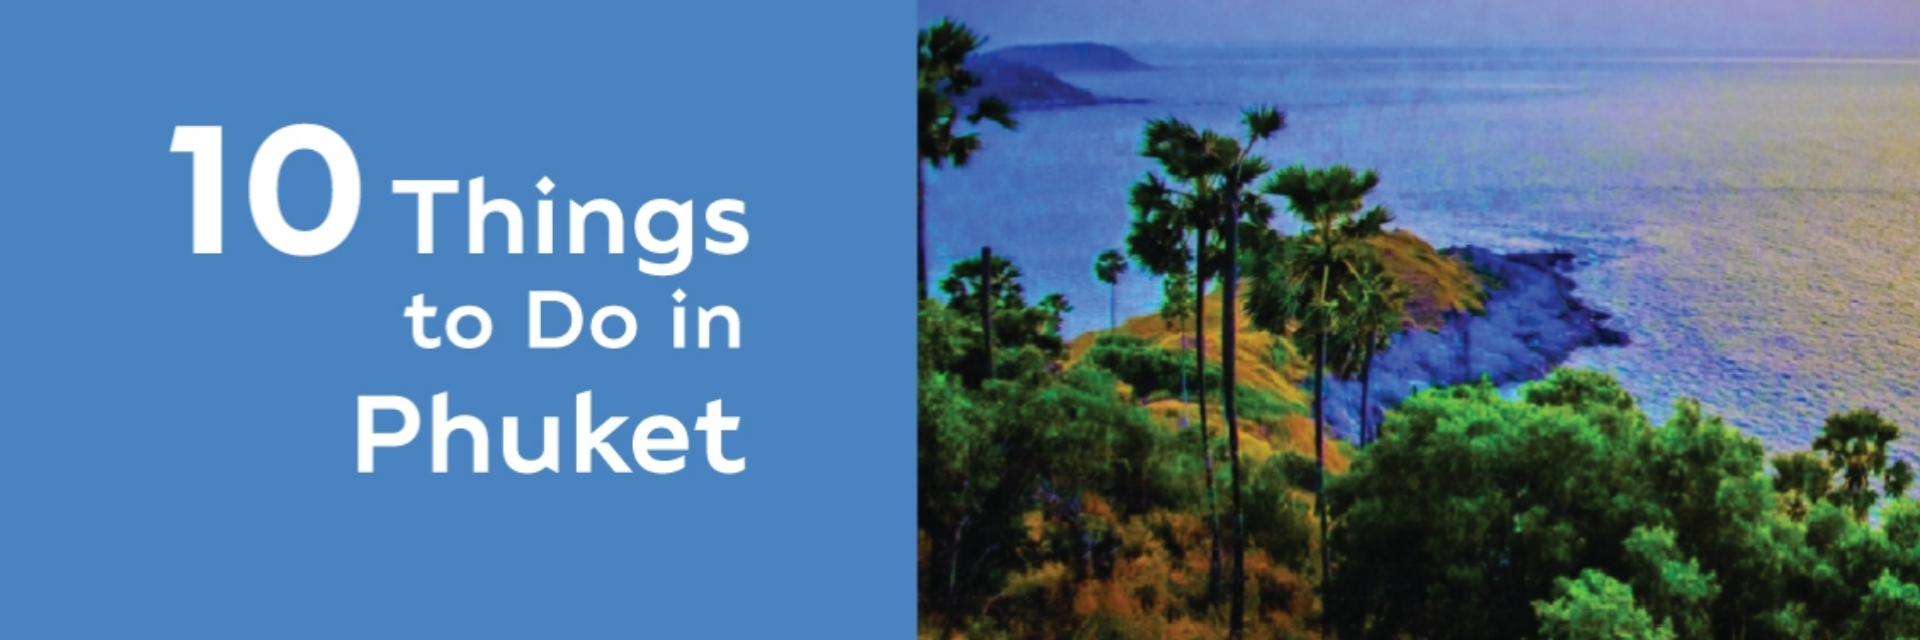 10 THINGS TO DO IN PHUKET